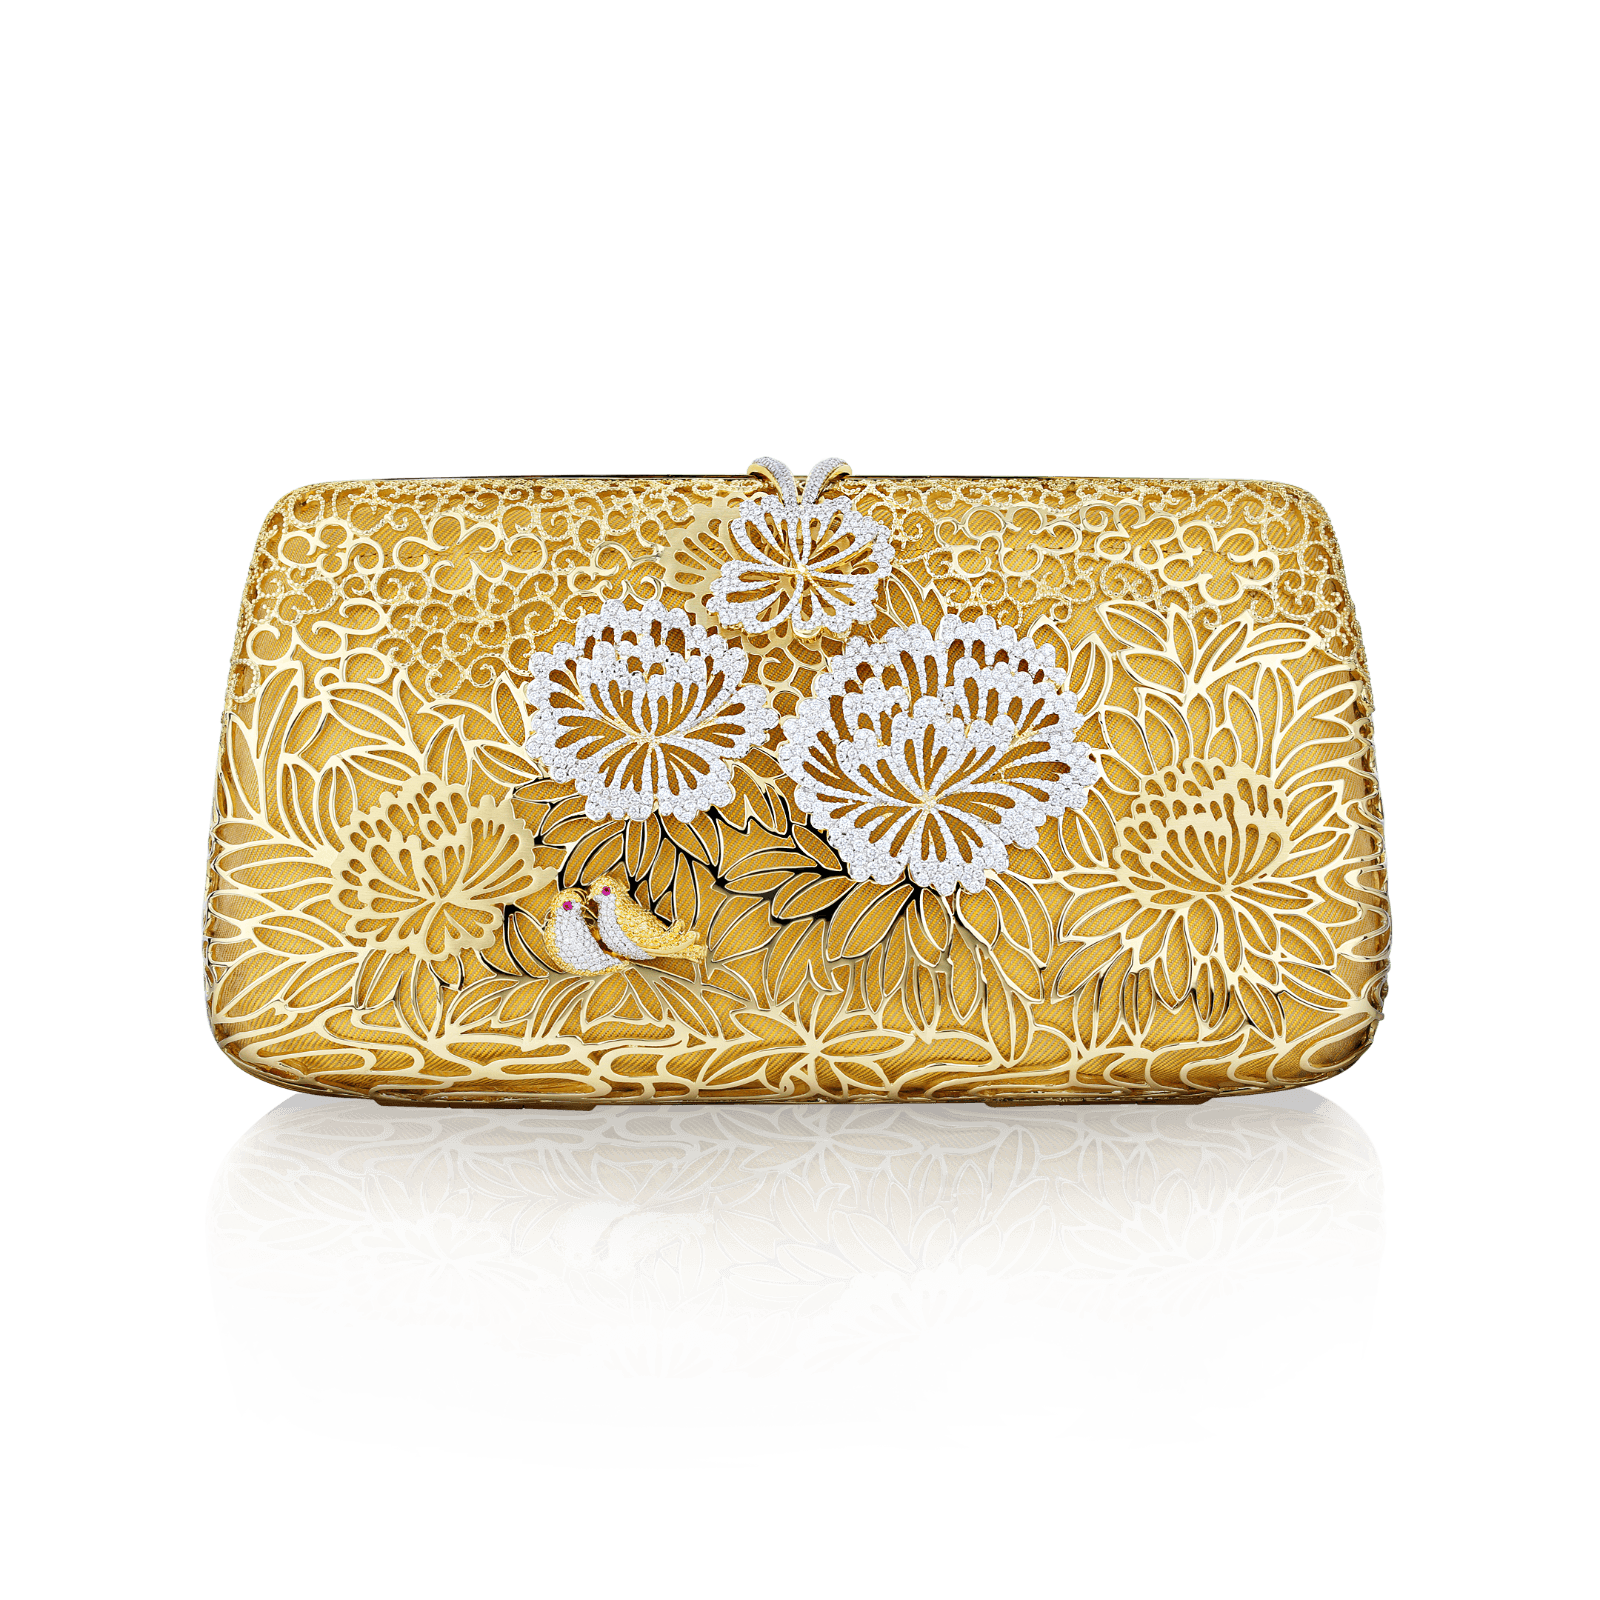 Glamour night clutch Peonies Design V2